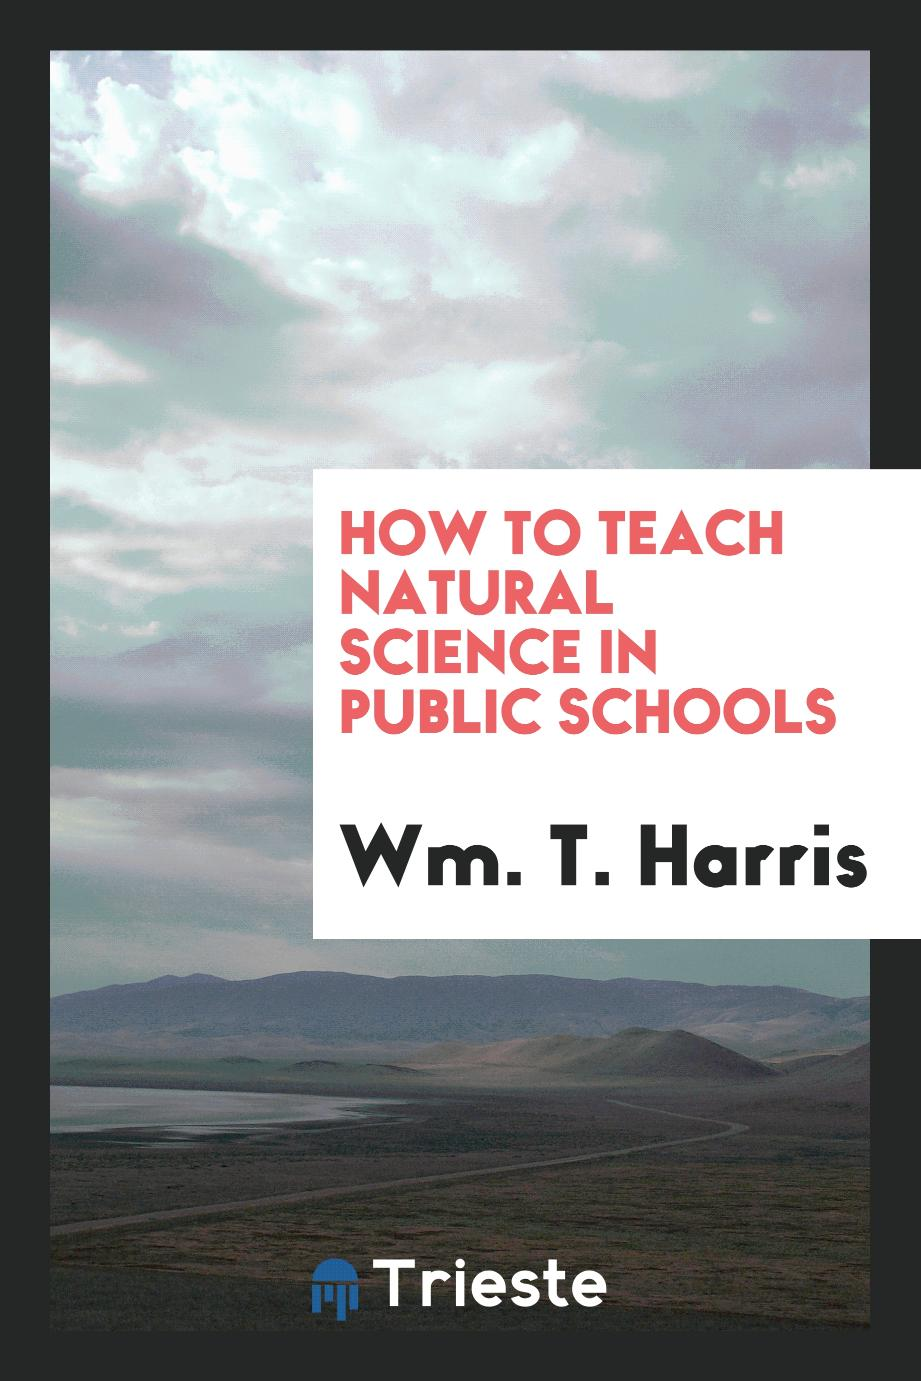 How to teach natural science in public schools